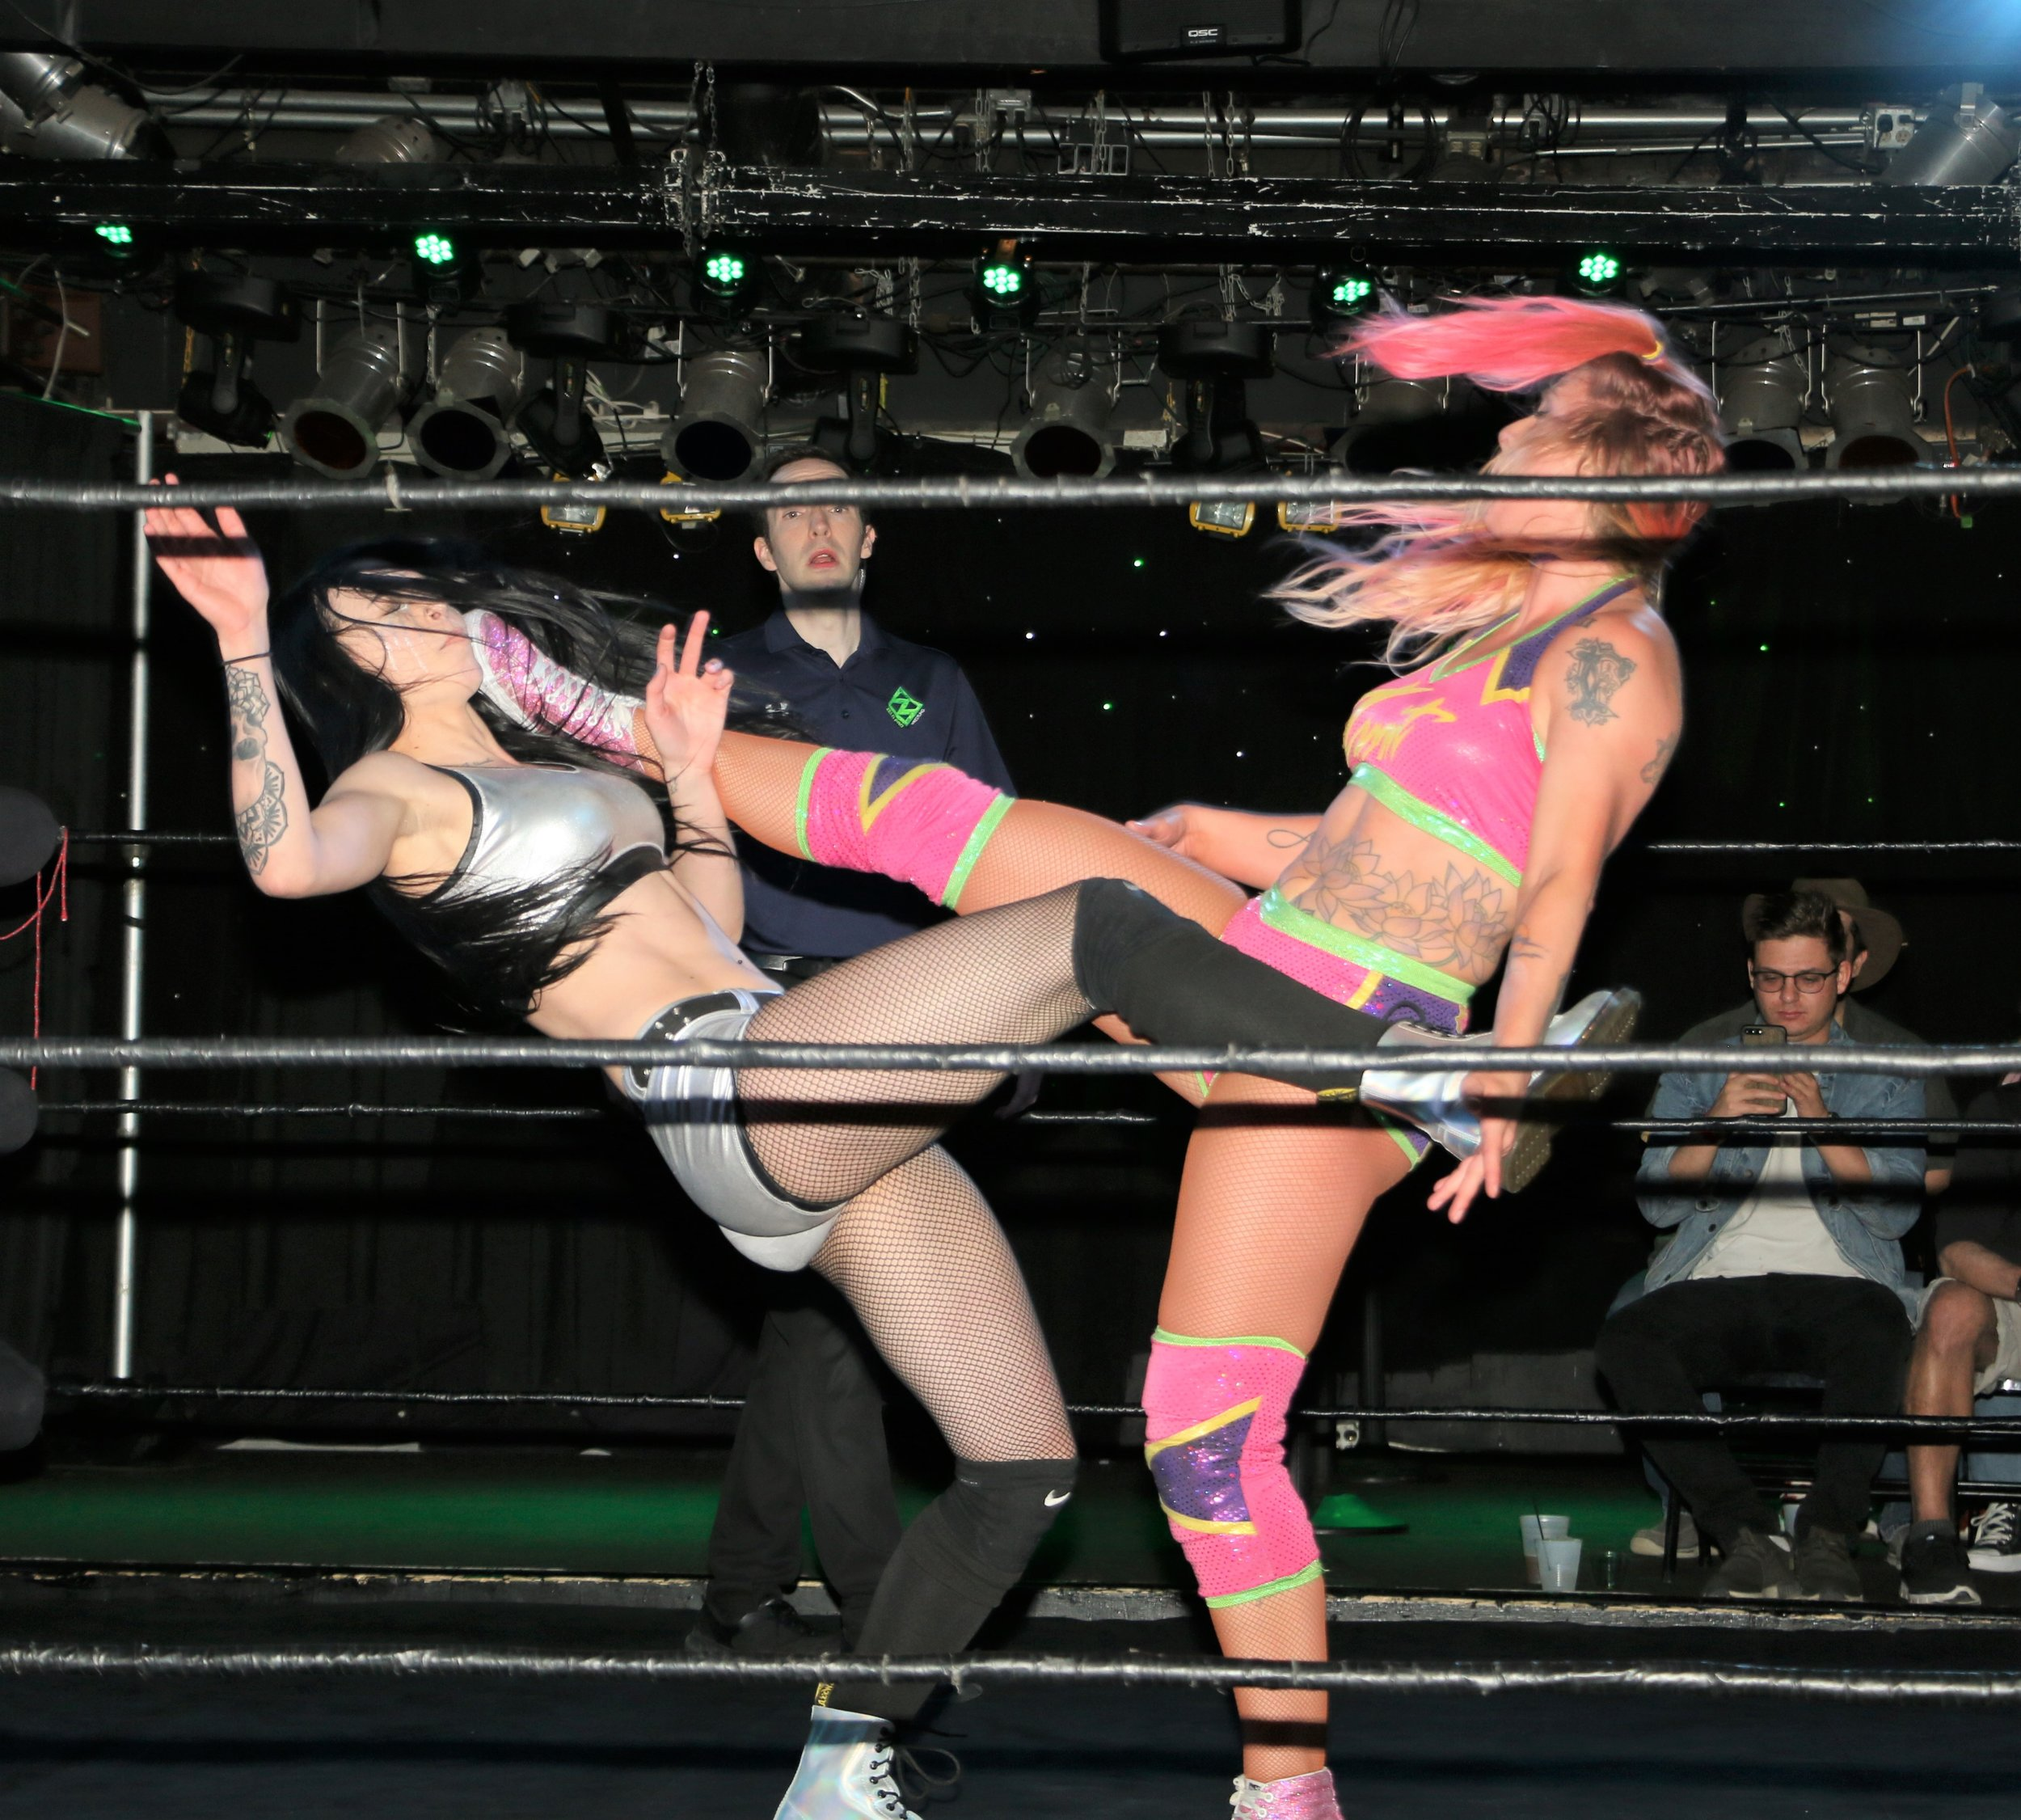 Elayna Black, left, and Laynie Luck connect on a double kick, knocking each other down.